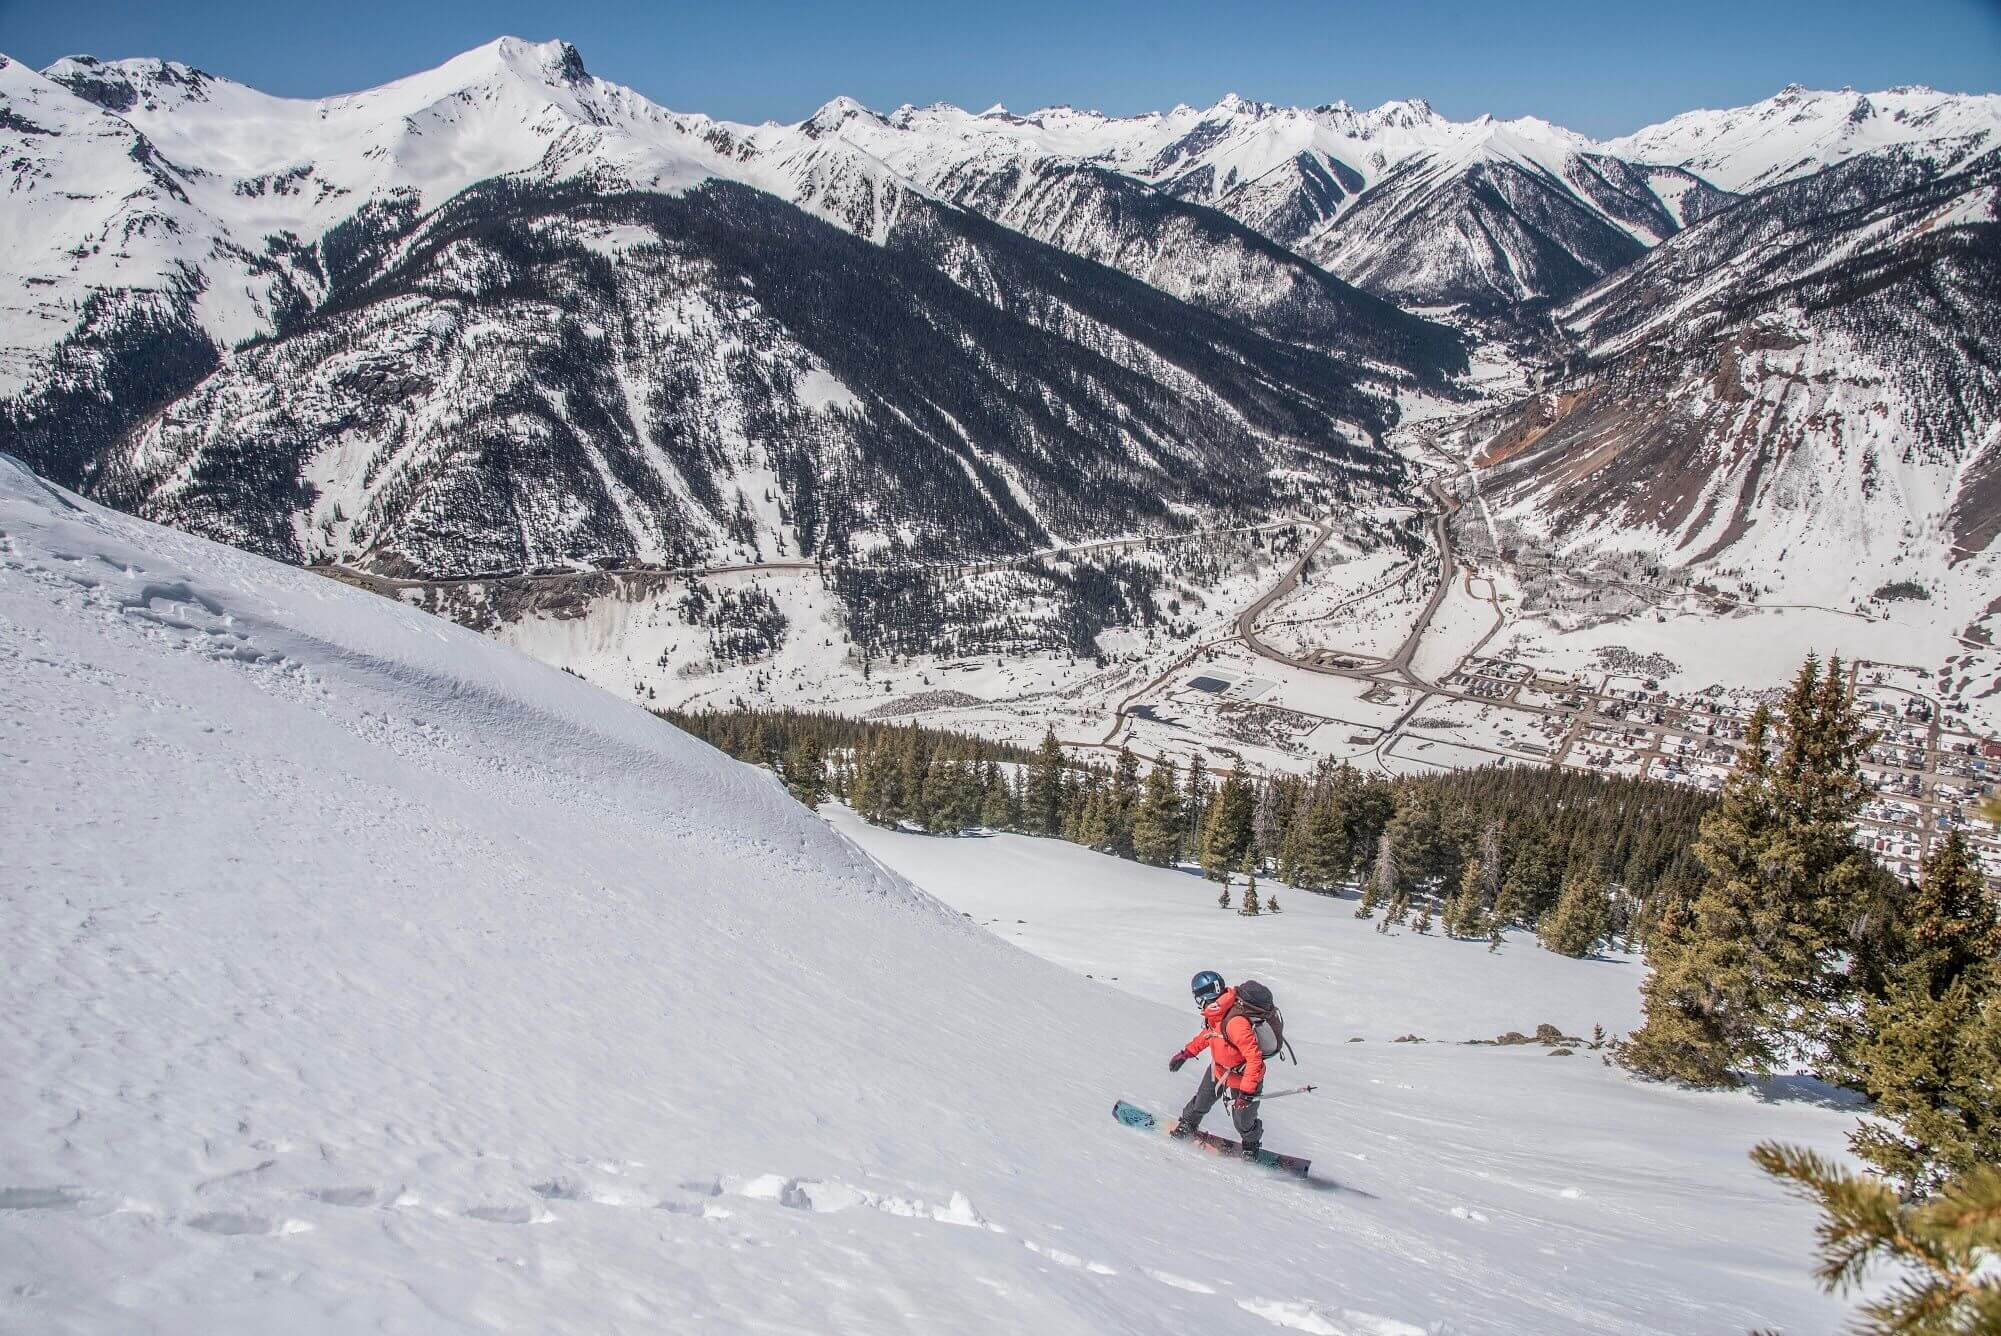 snowboarder riding snowboard on sunny winter day